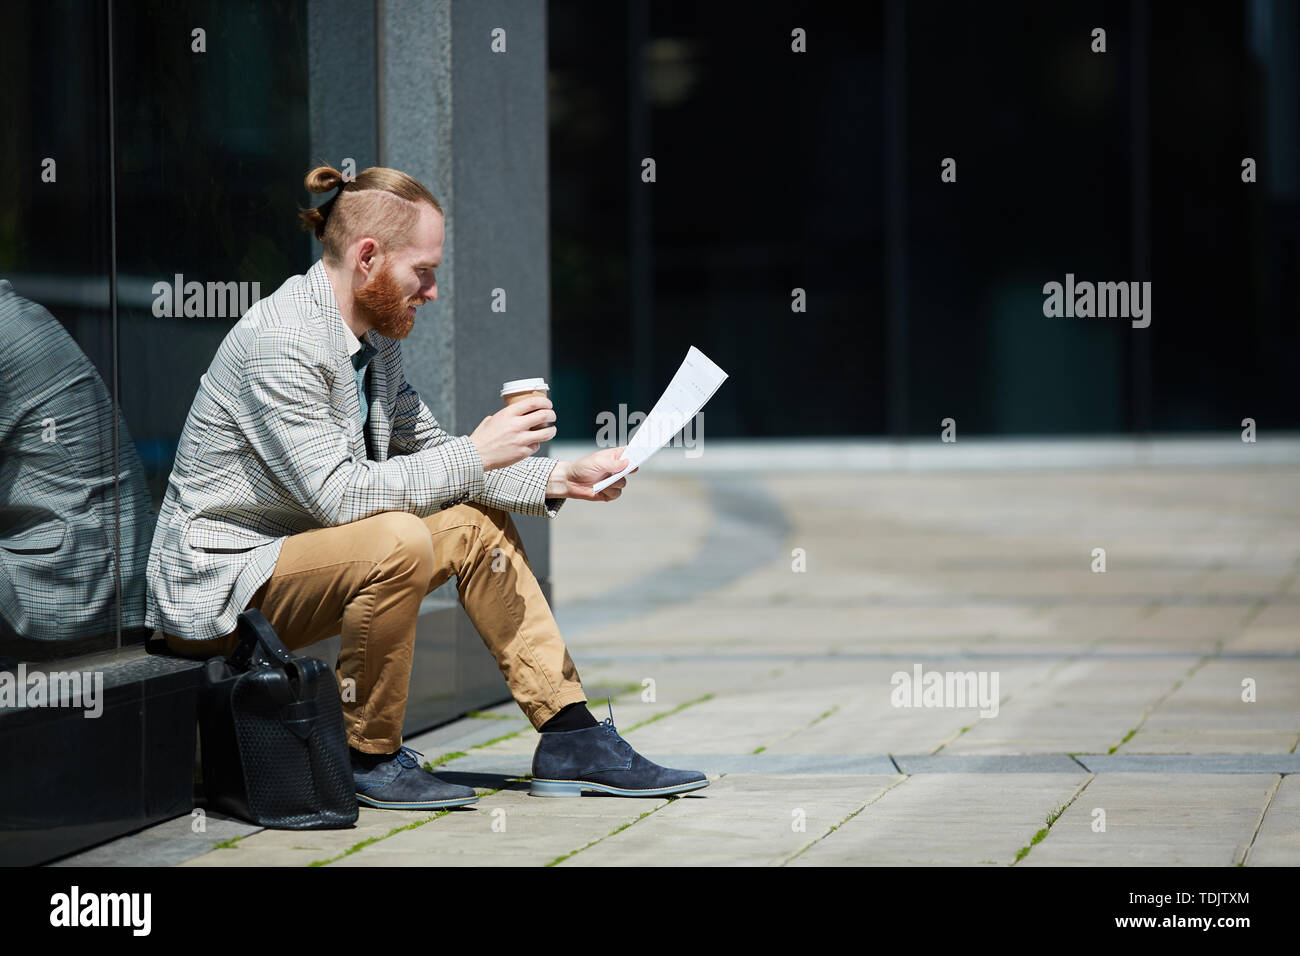 Thoughtful handsome young freelance analyst sitting outdoors and examining data report while drinking coffee - Stock Image